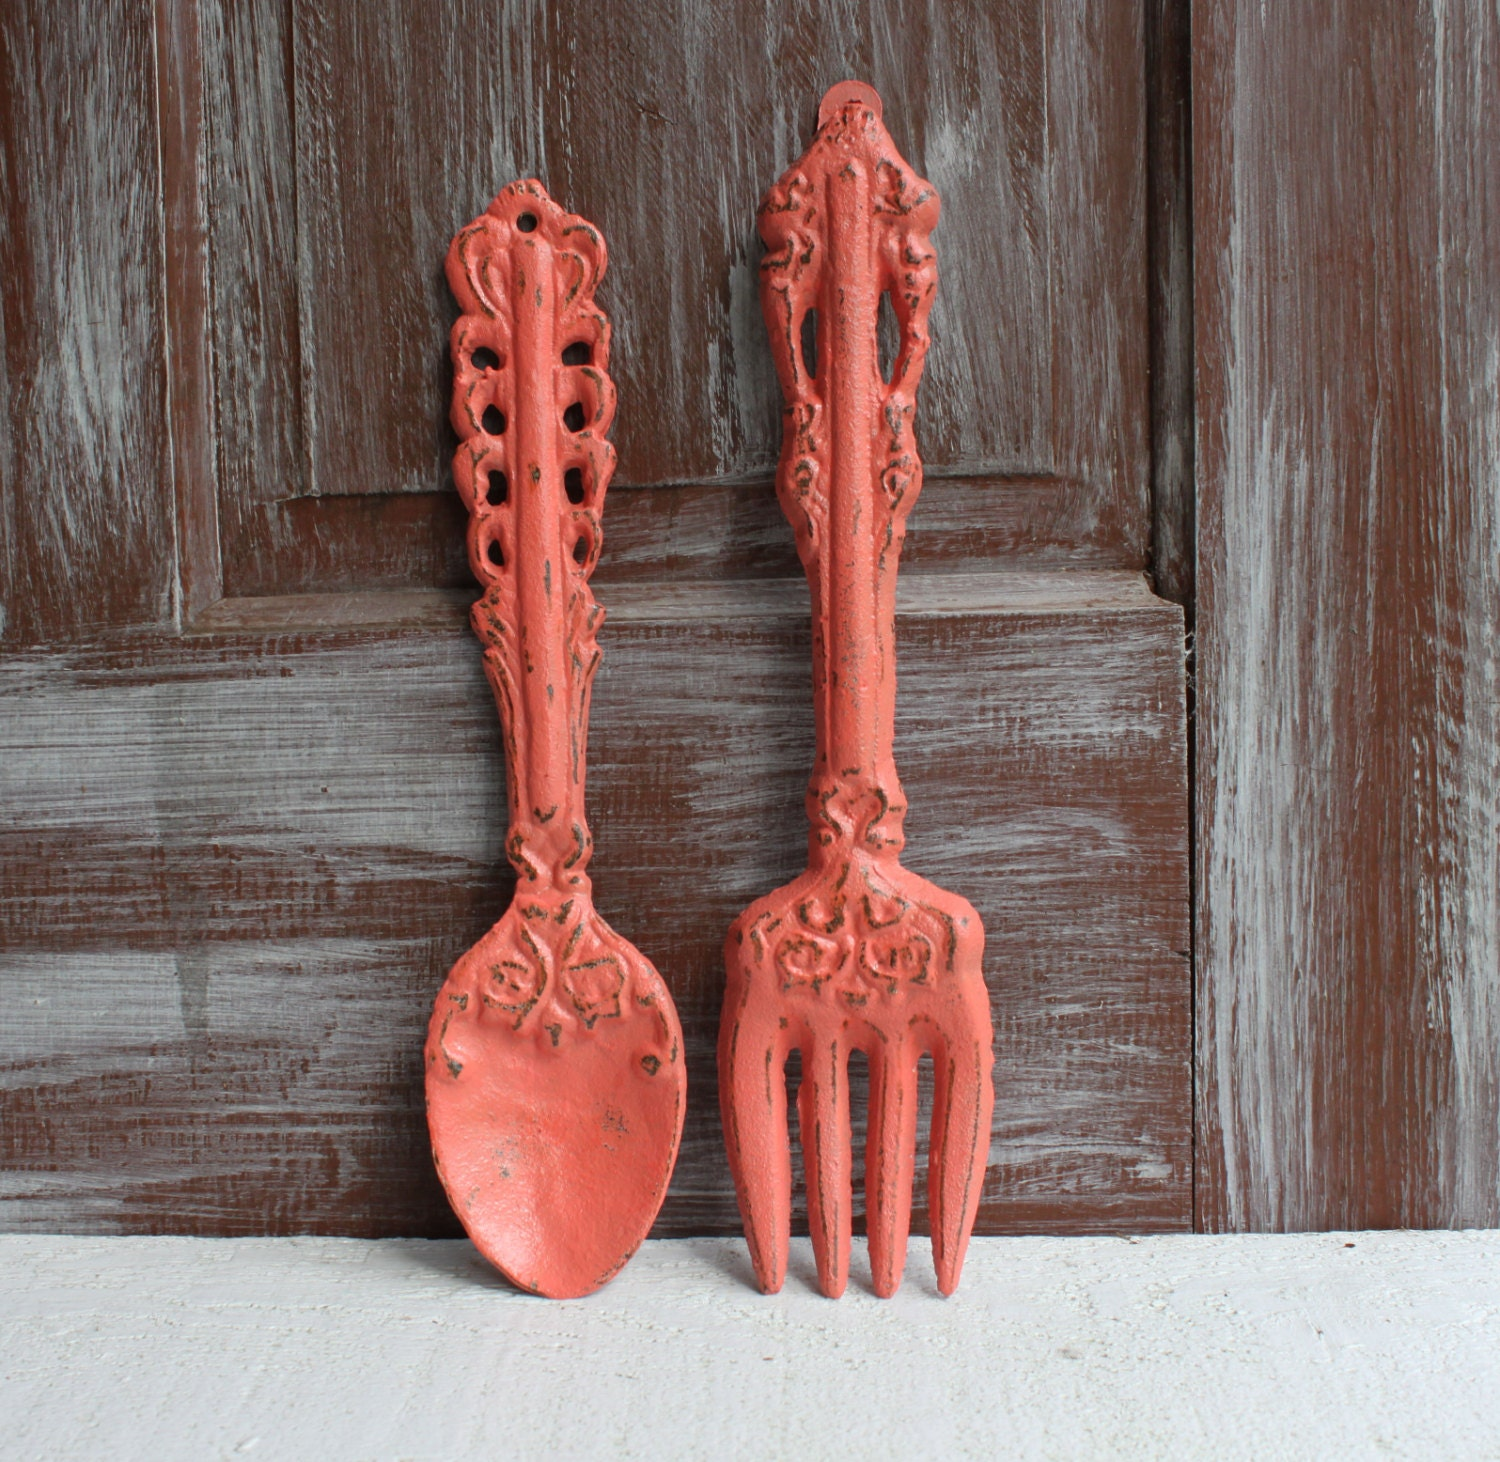 Metal Fork And Spoon Decor Kitchen Wall Decor Coral Wall